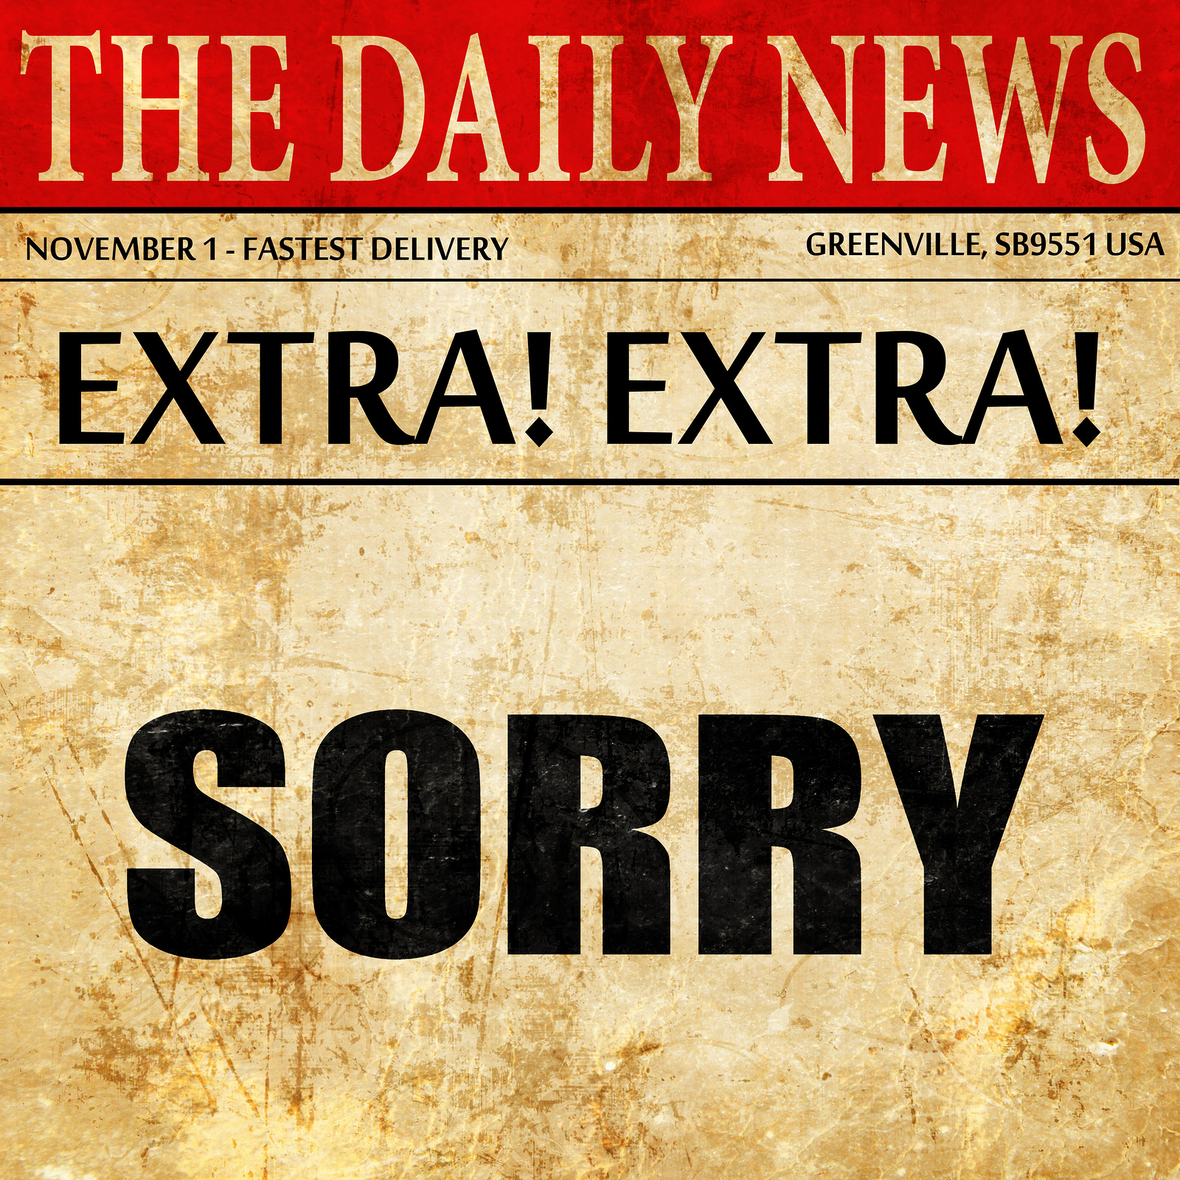 bigstock-sorry-newspaper-article-text-167659049